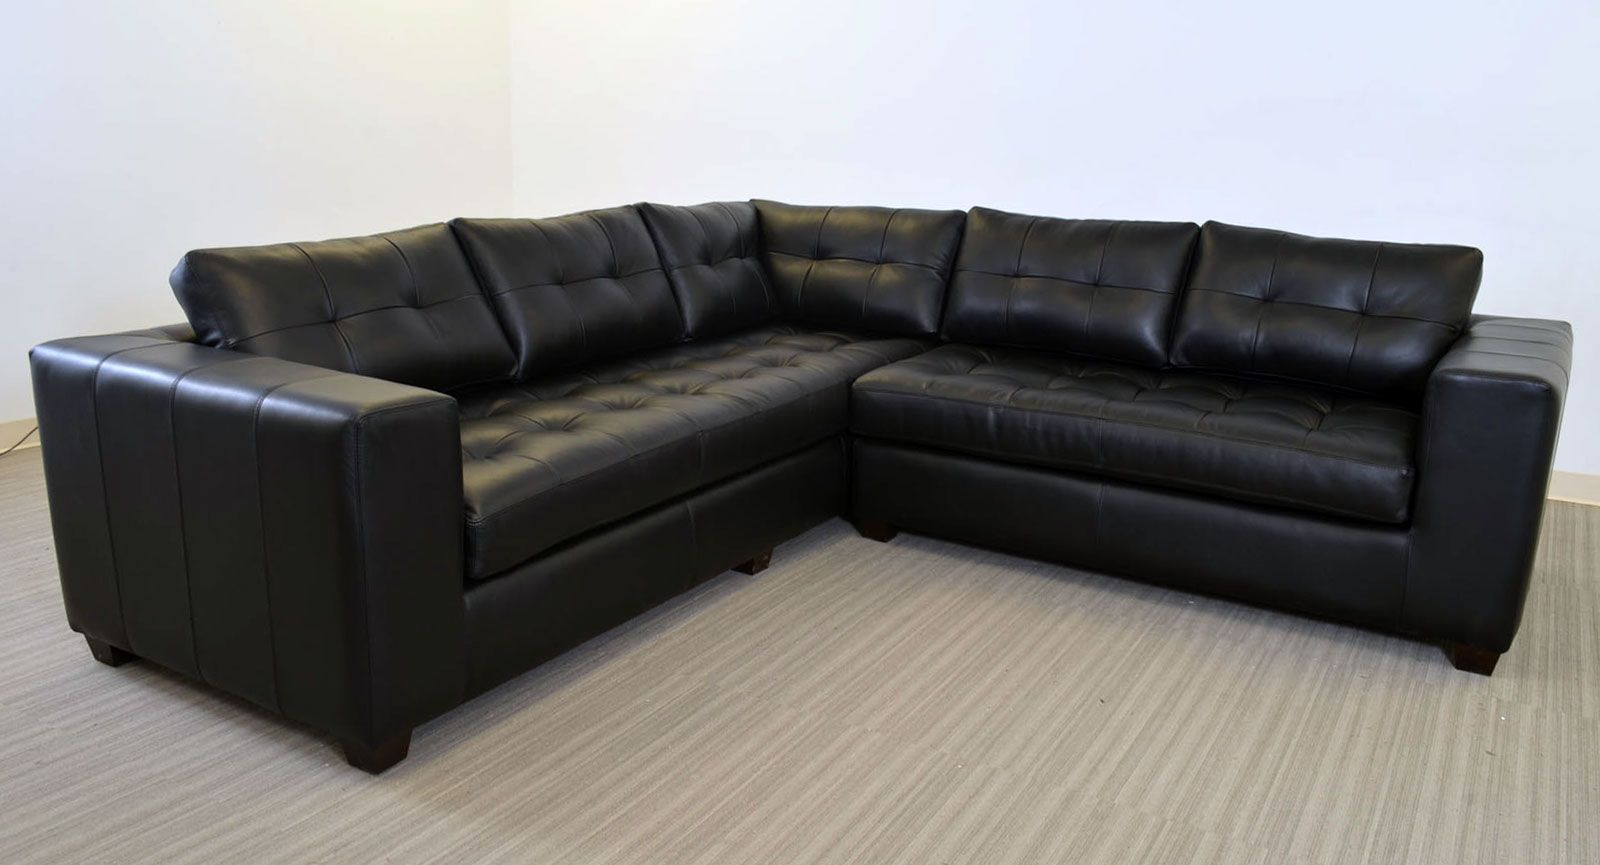 Gev Sofa Sectional The Leather Company Clean Line Large Scale Contemporary Style